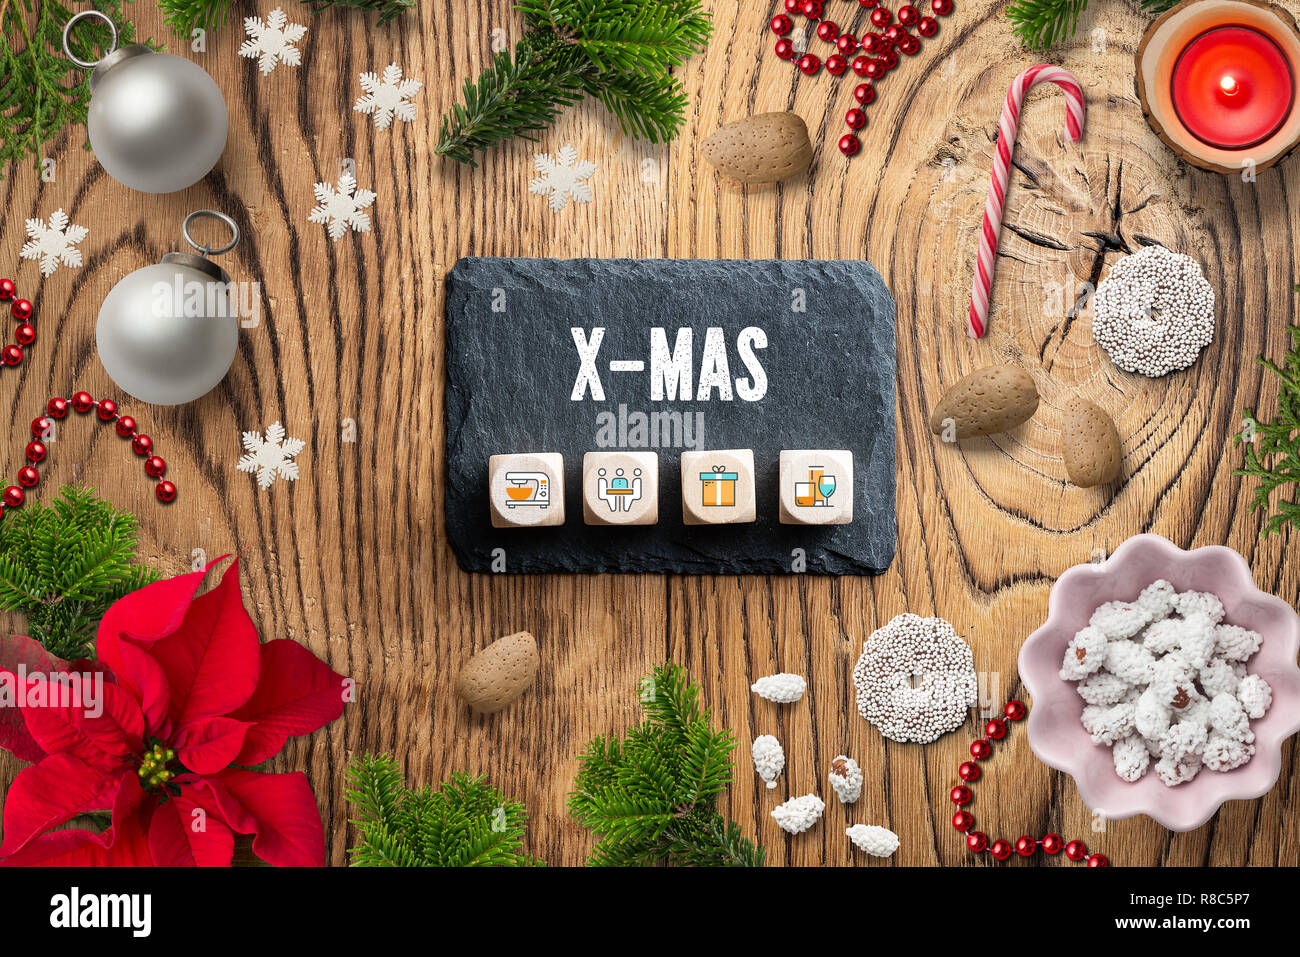 Christmas decoration on rustic wooden background and the message 'X-MAS' - Stock Image